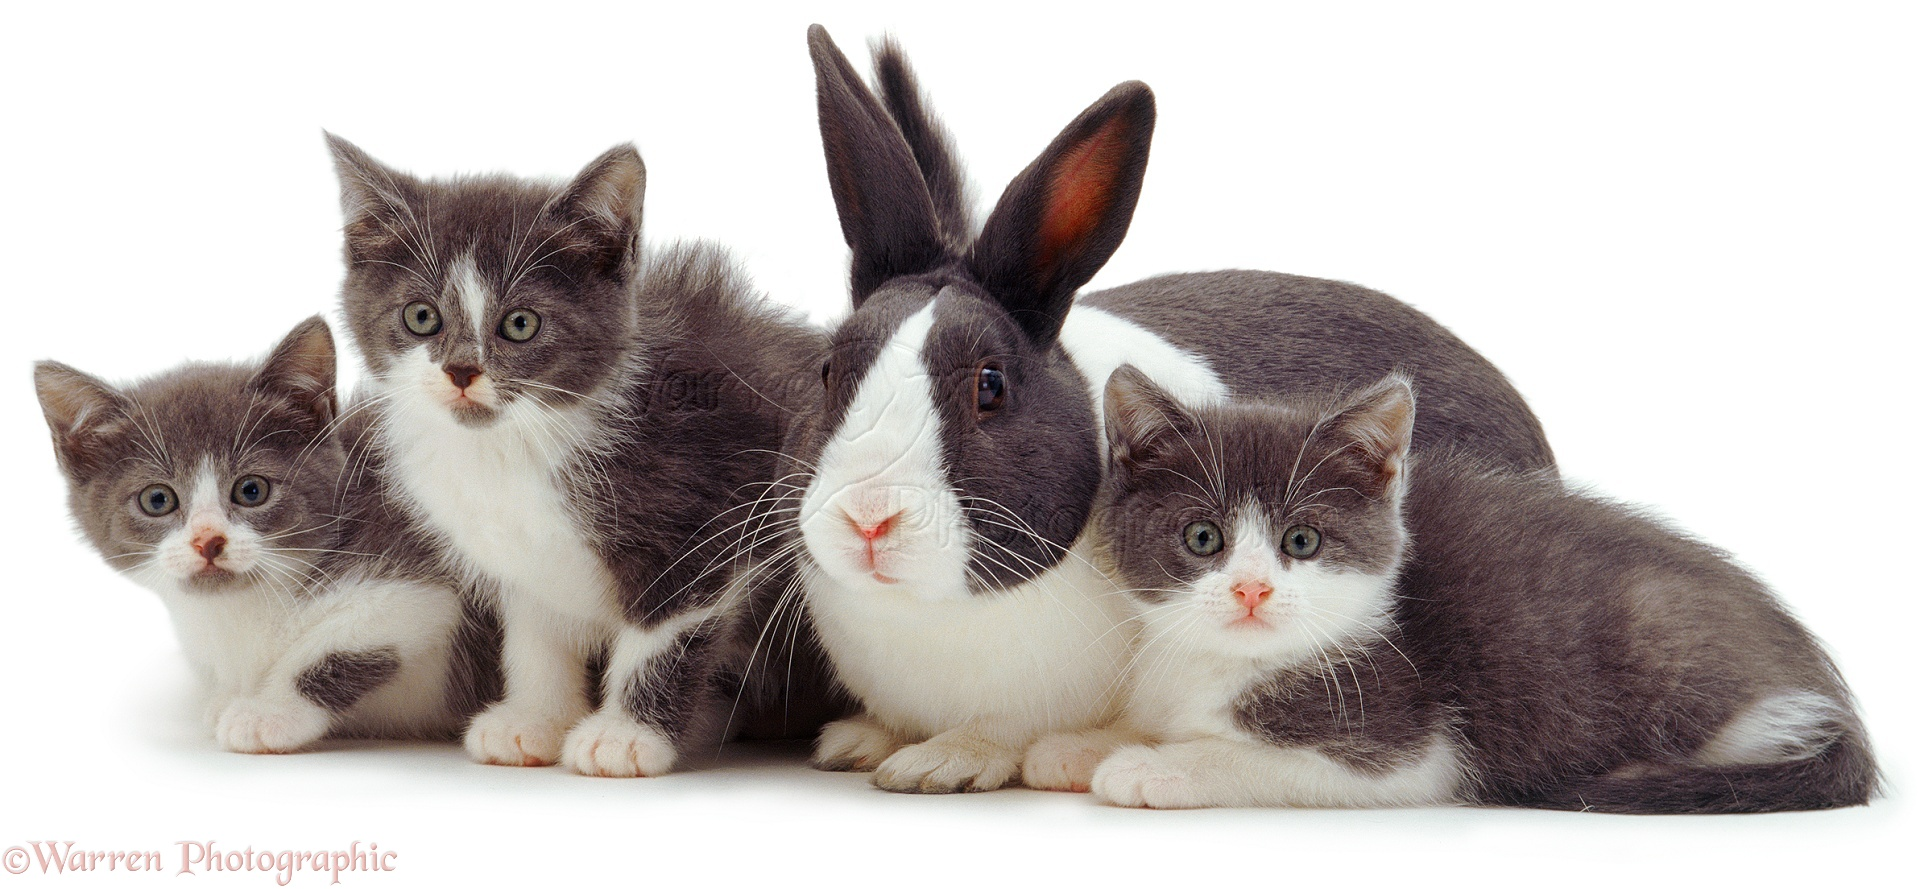 Pets Cute grey and white kittens and rabbit photo WP